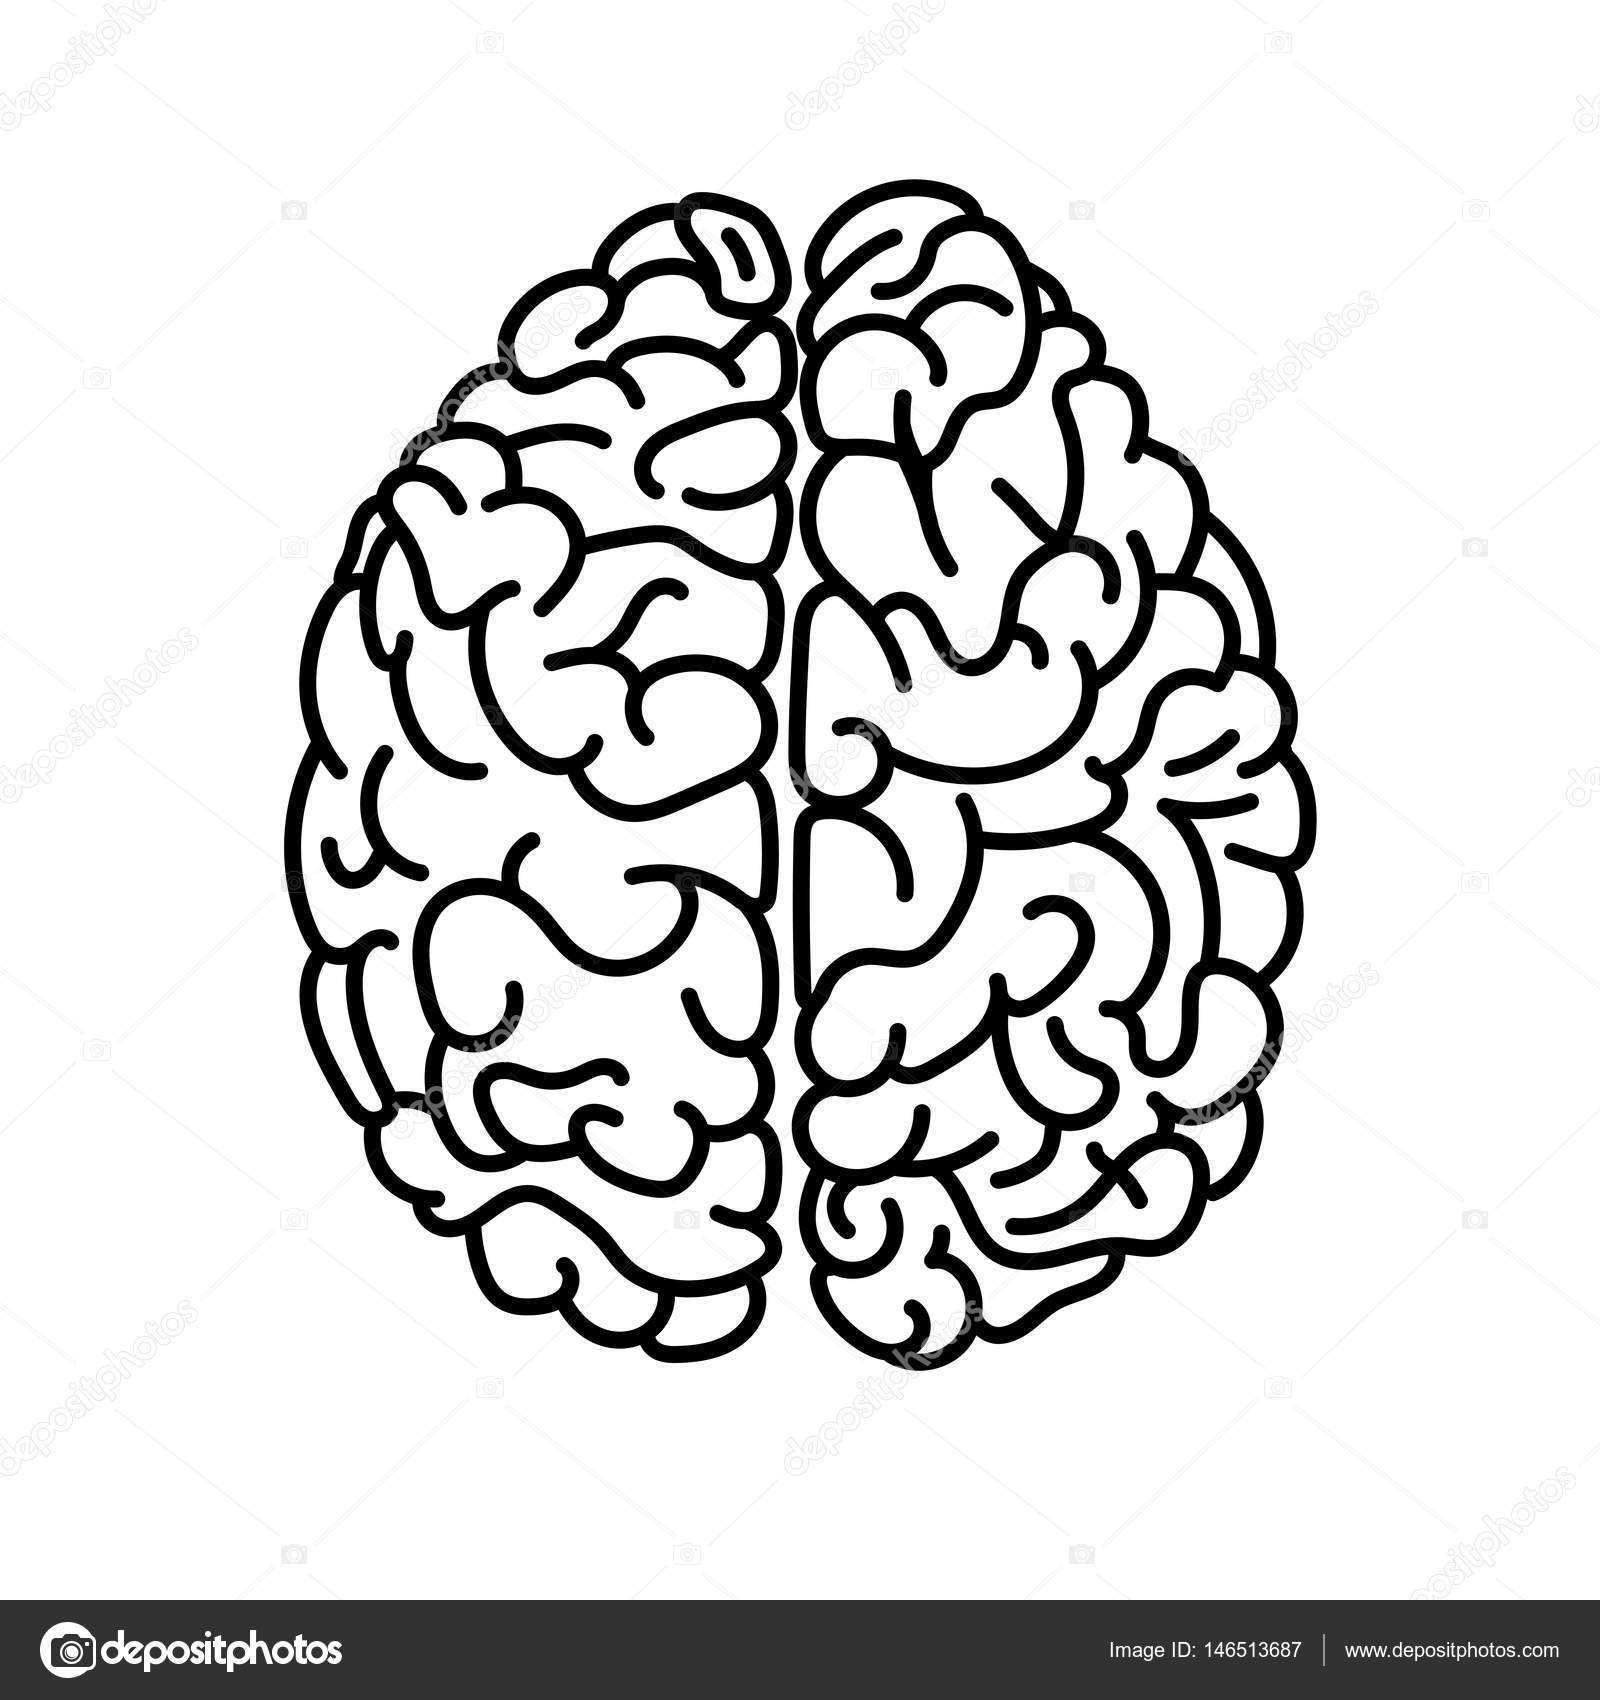 Flat style human brain top view doodle illustration ...